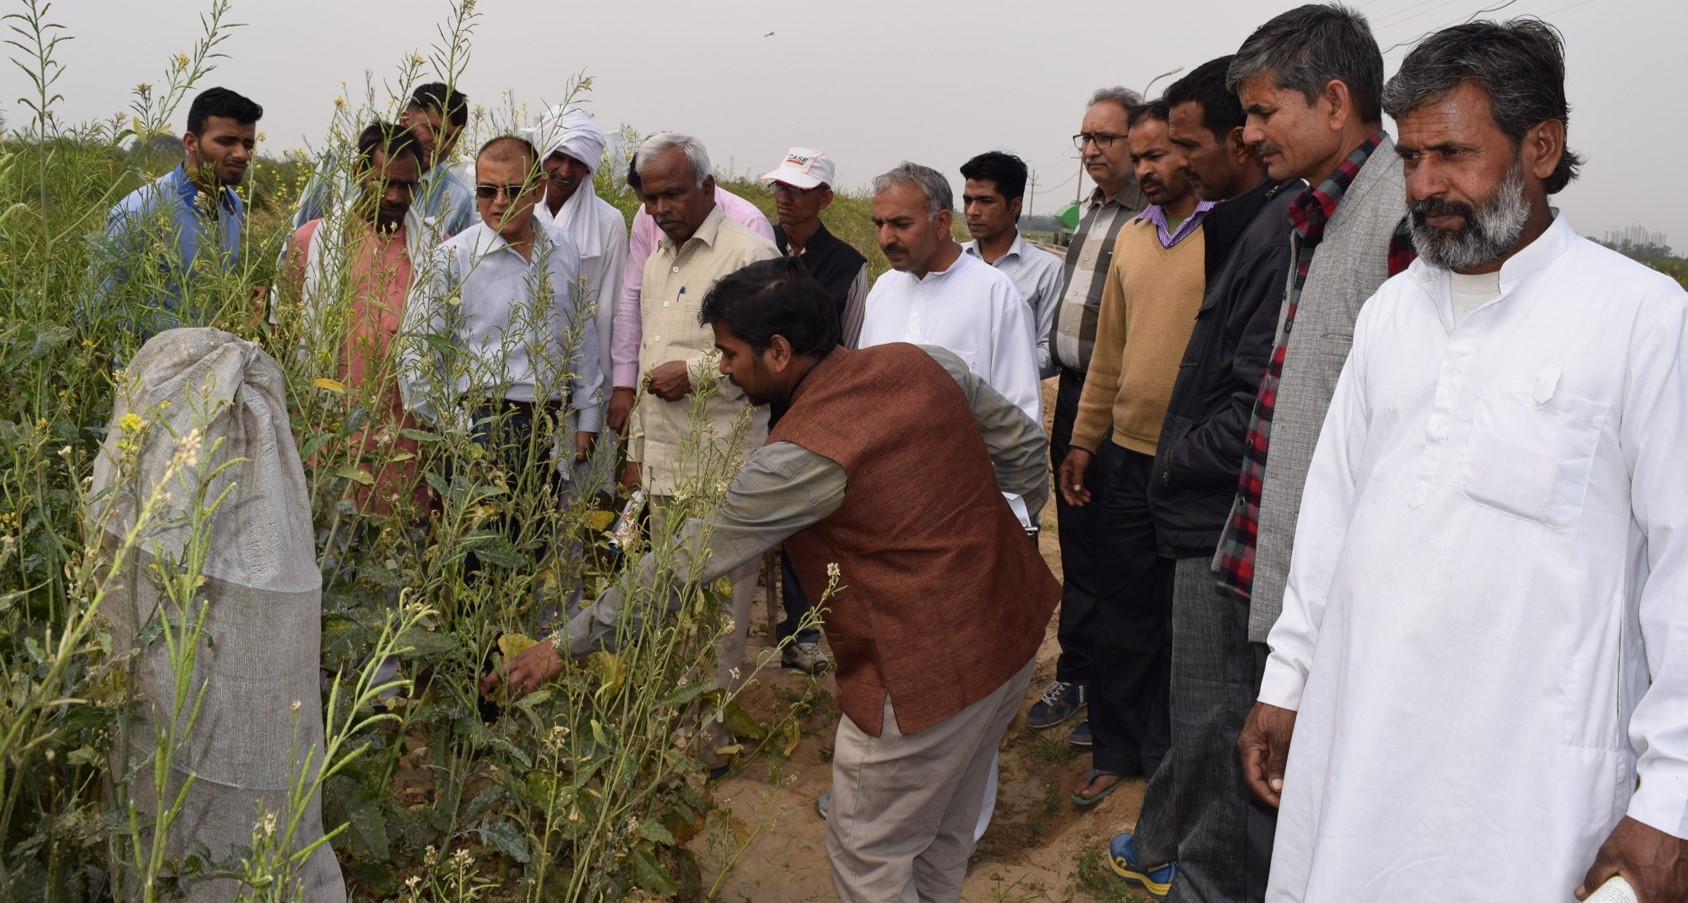 Farmers from Bulandshahar district interact with Brassica group